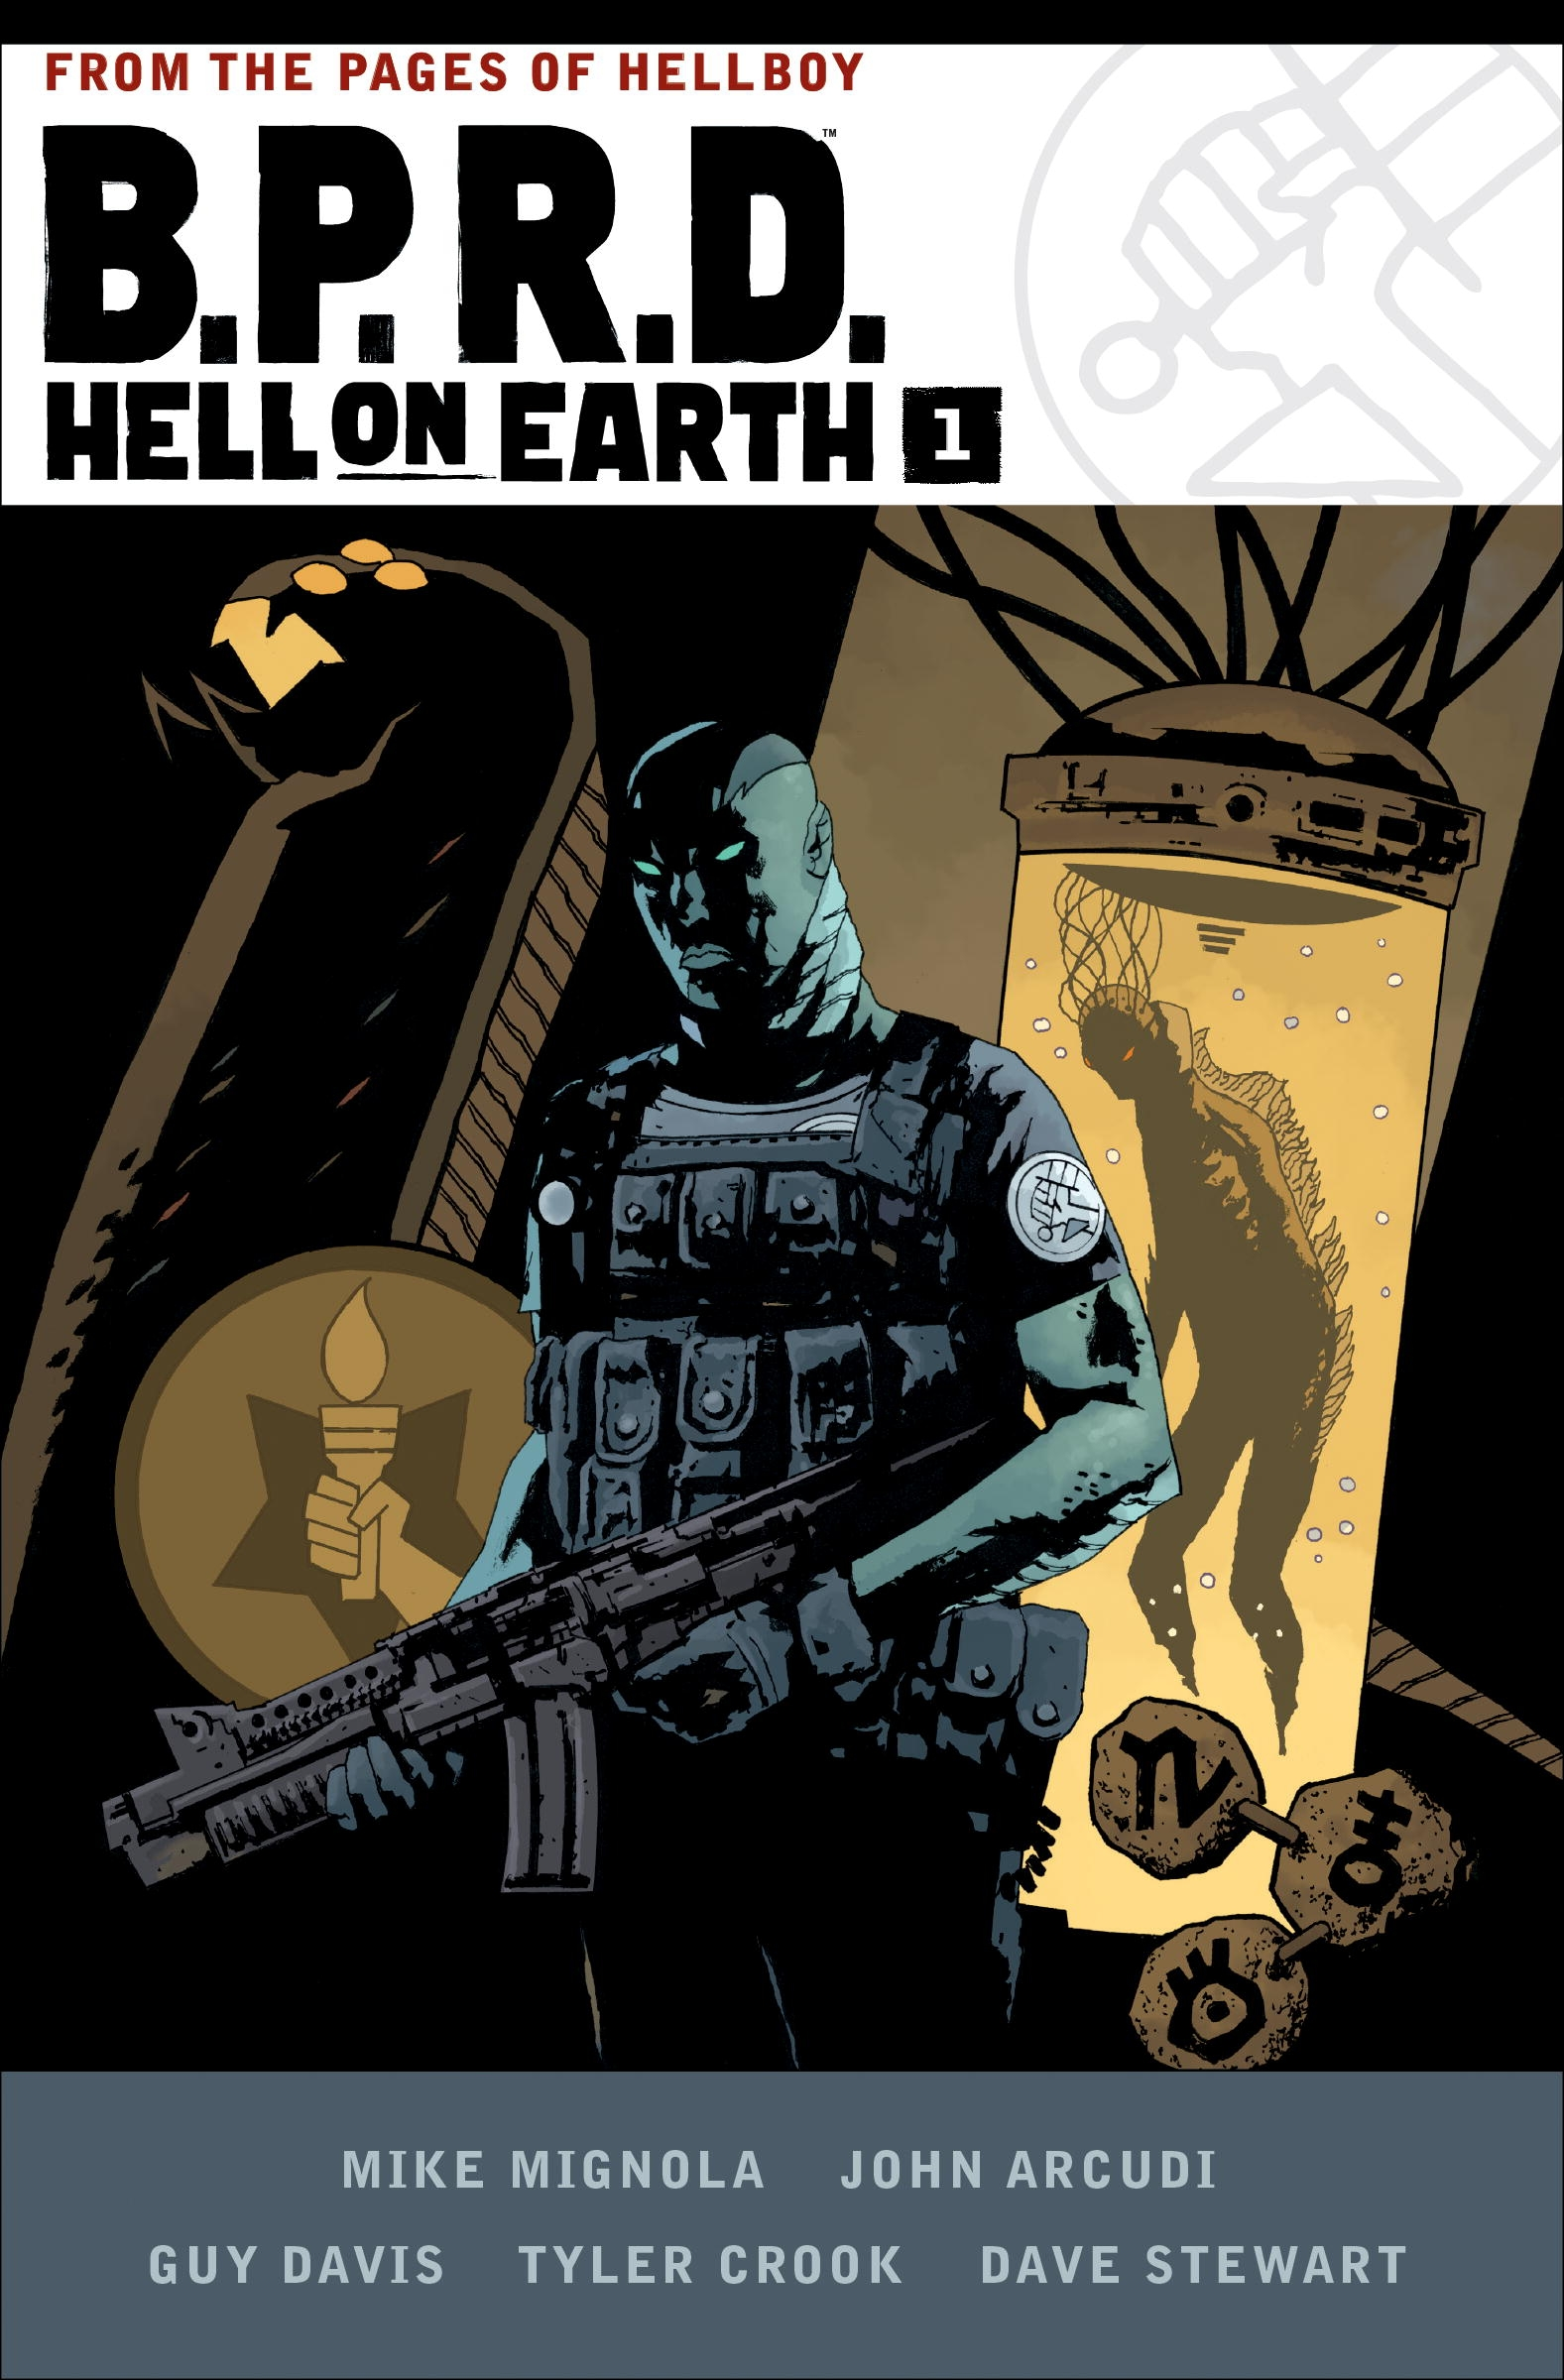 B.P.R.D. Hell on Earth Volume 1 by Mike Mignola, ISBN: 9781506703602